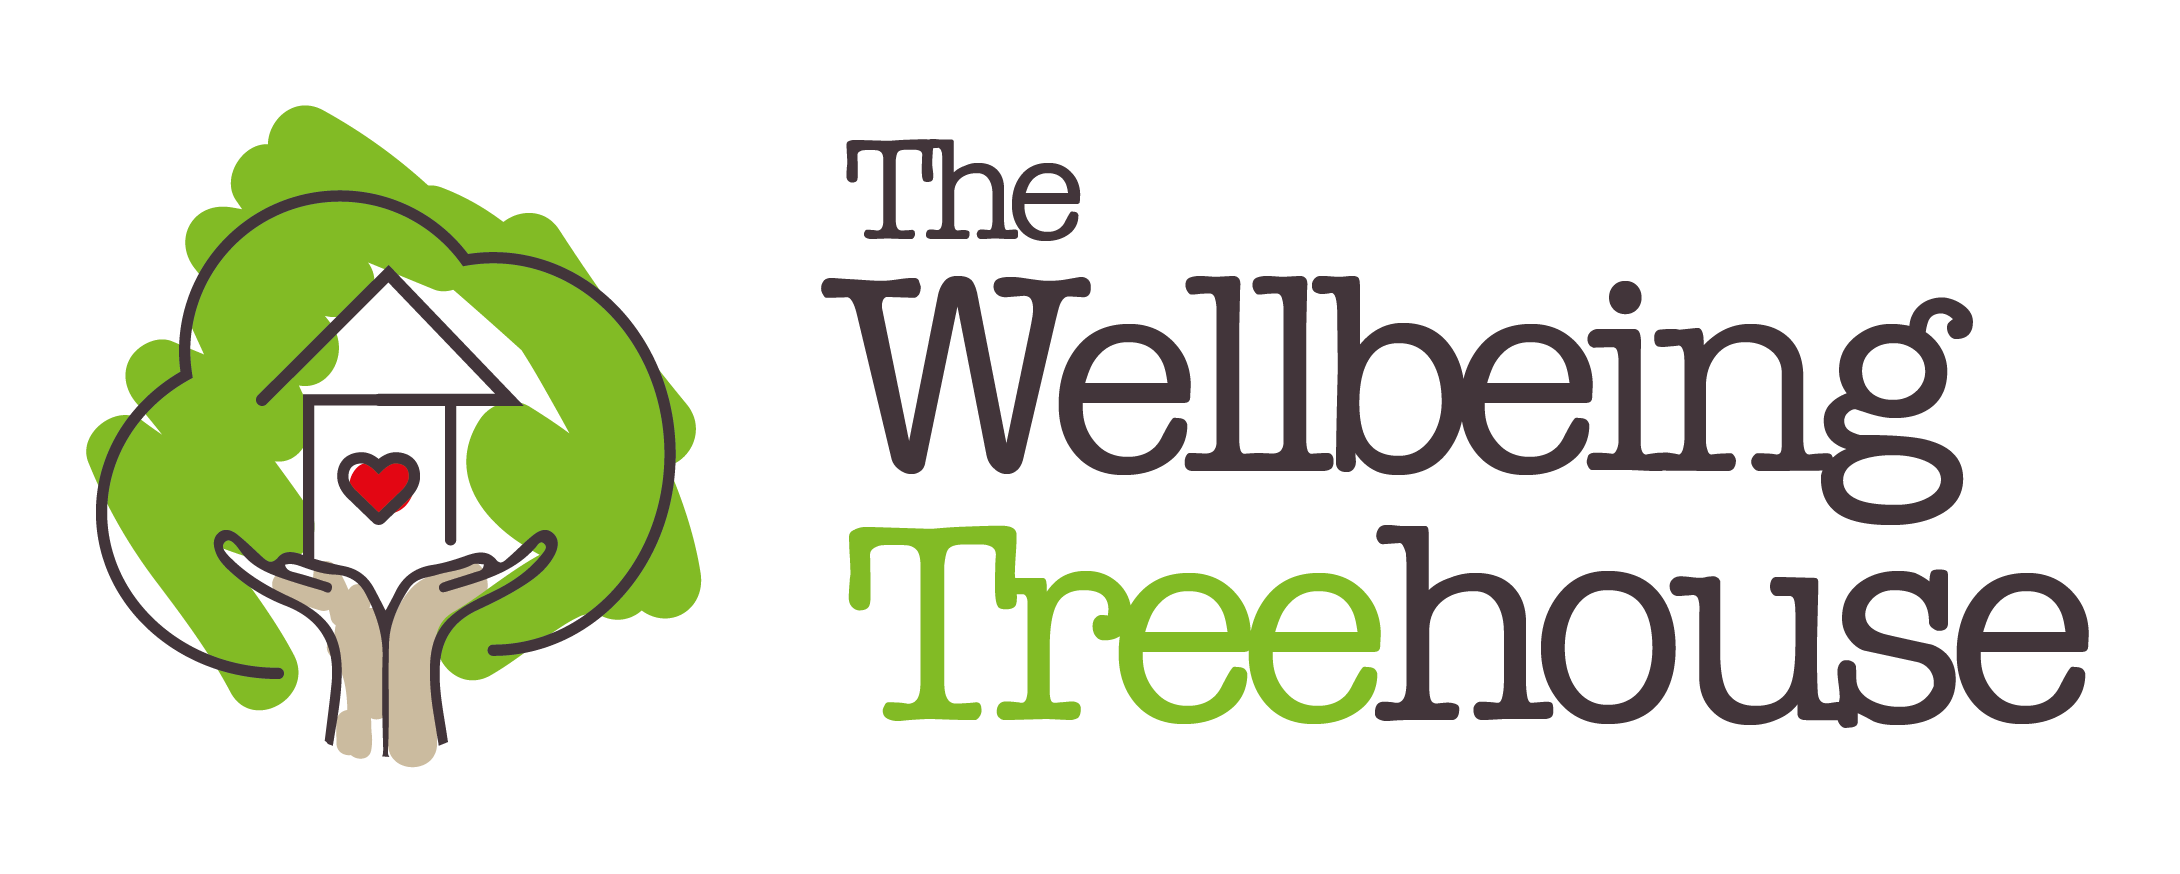 The Wellbeing Treehouse's logo